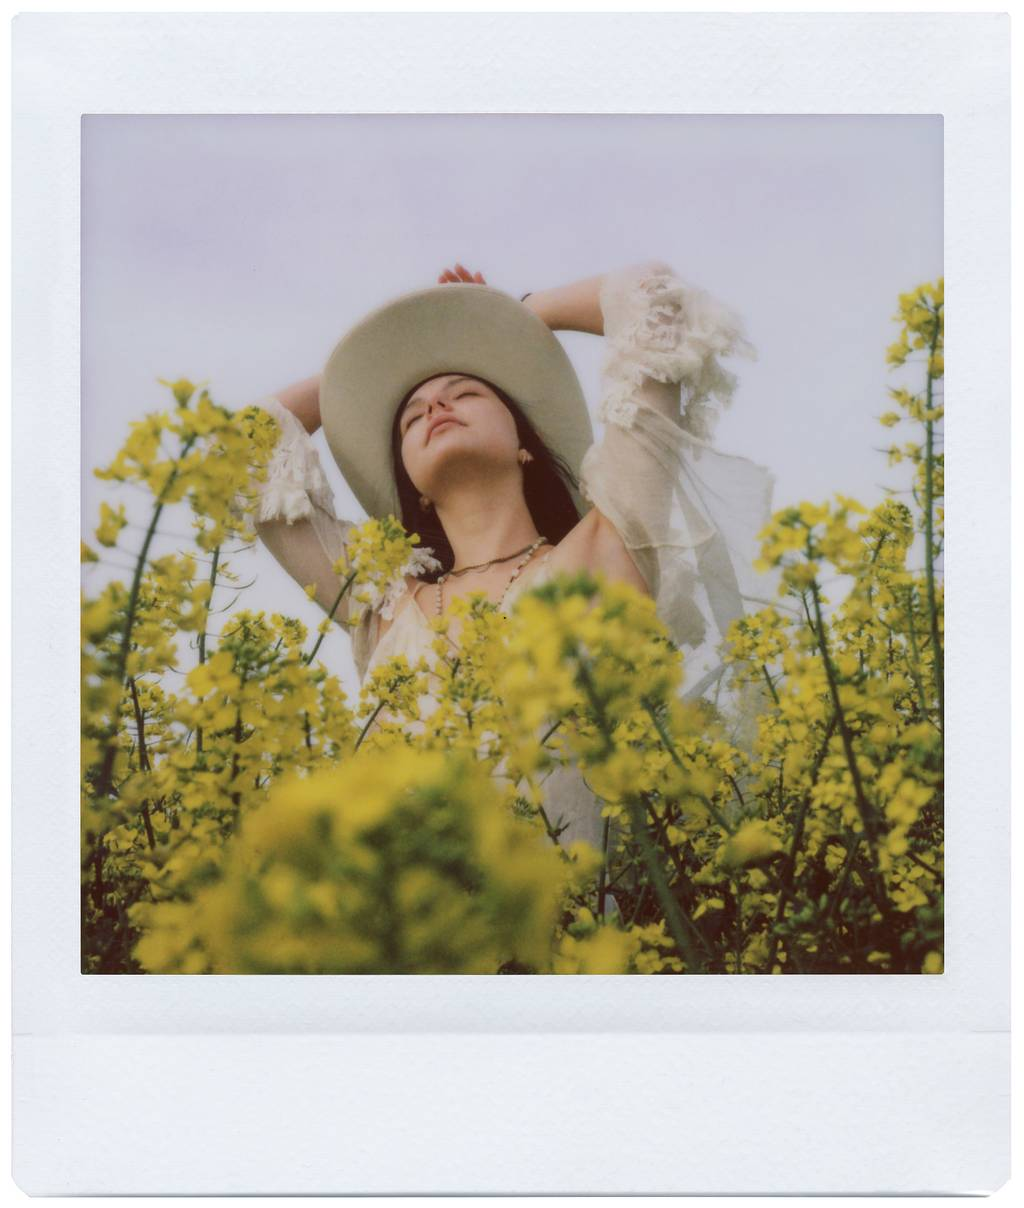 Laura Allard Fleischl: Springtime with the Lomo'Instant Square Glass